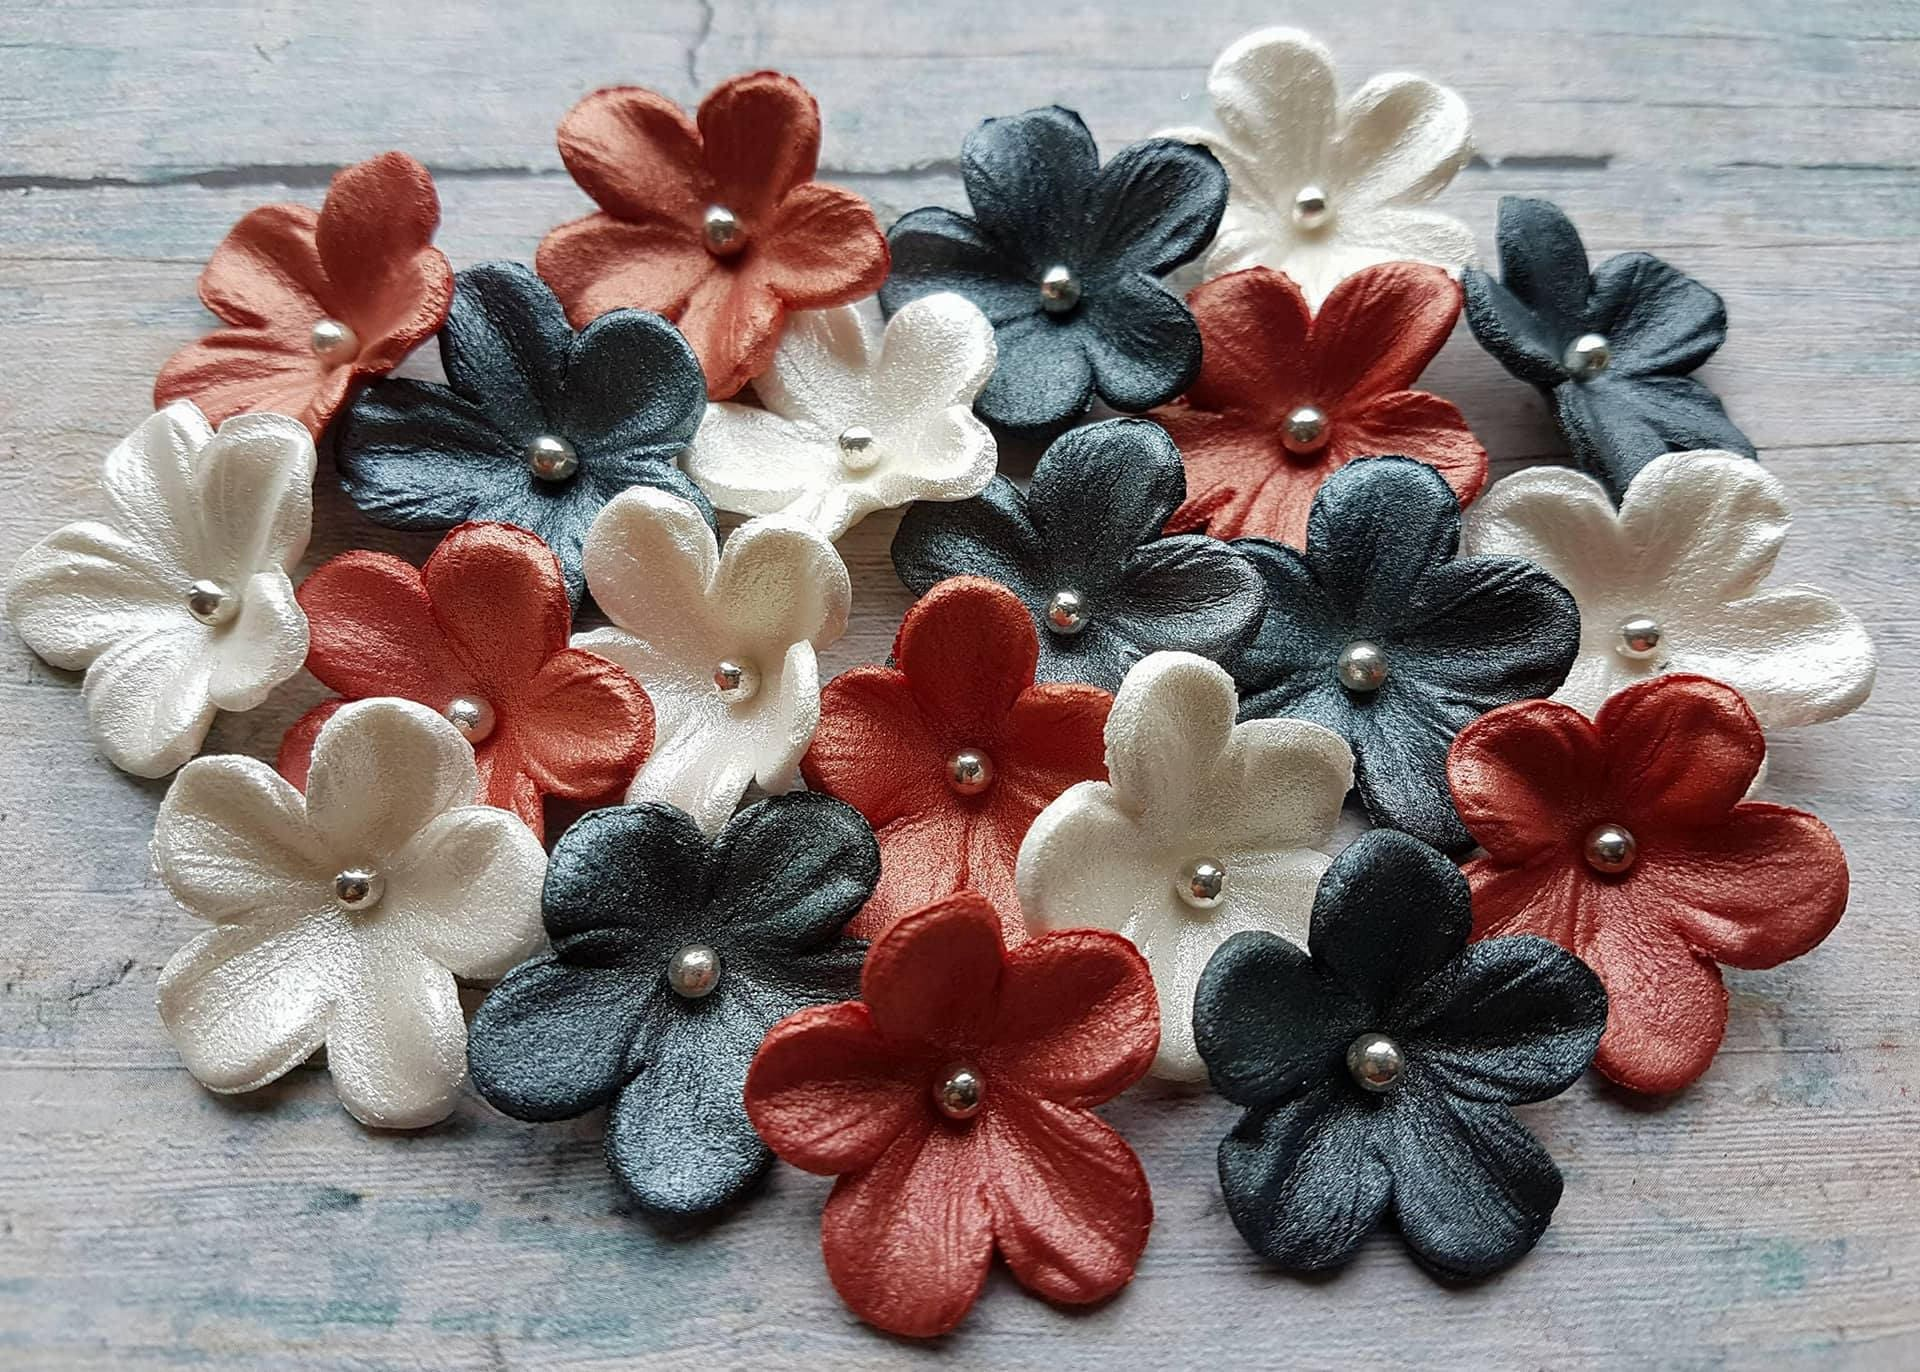 20 edible sugar paste fondant flowers red black white cake cupcake 20 edible sugar paste fondant flowers red black white cake cupcake toppers decorations perl finished mightylinksfo